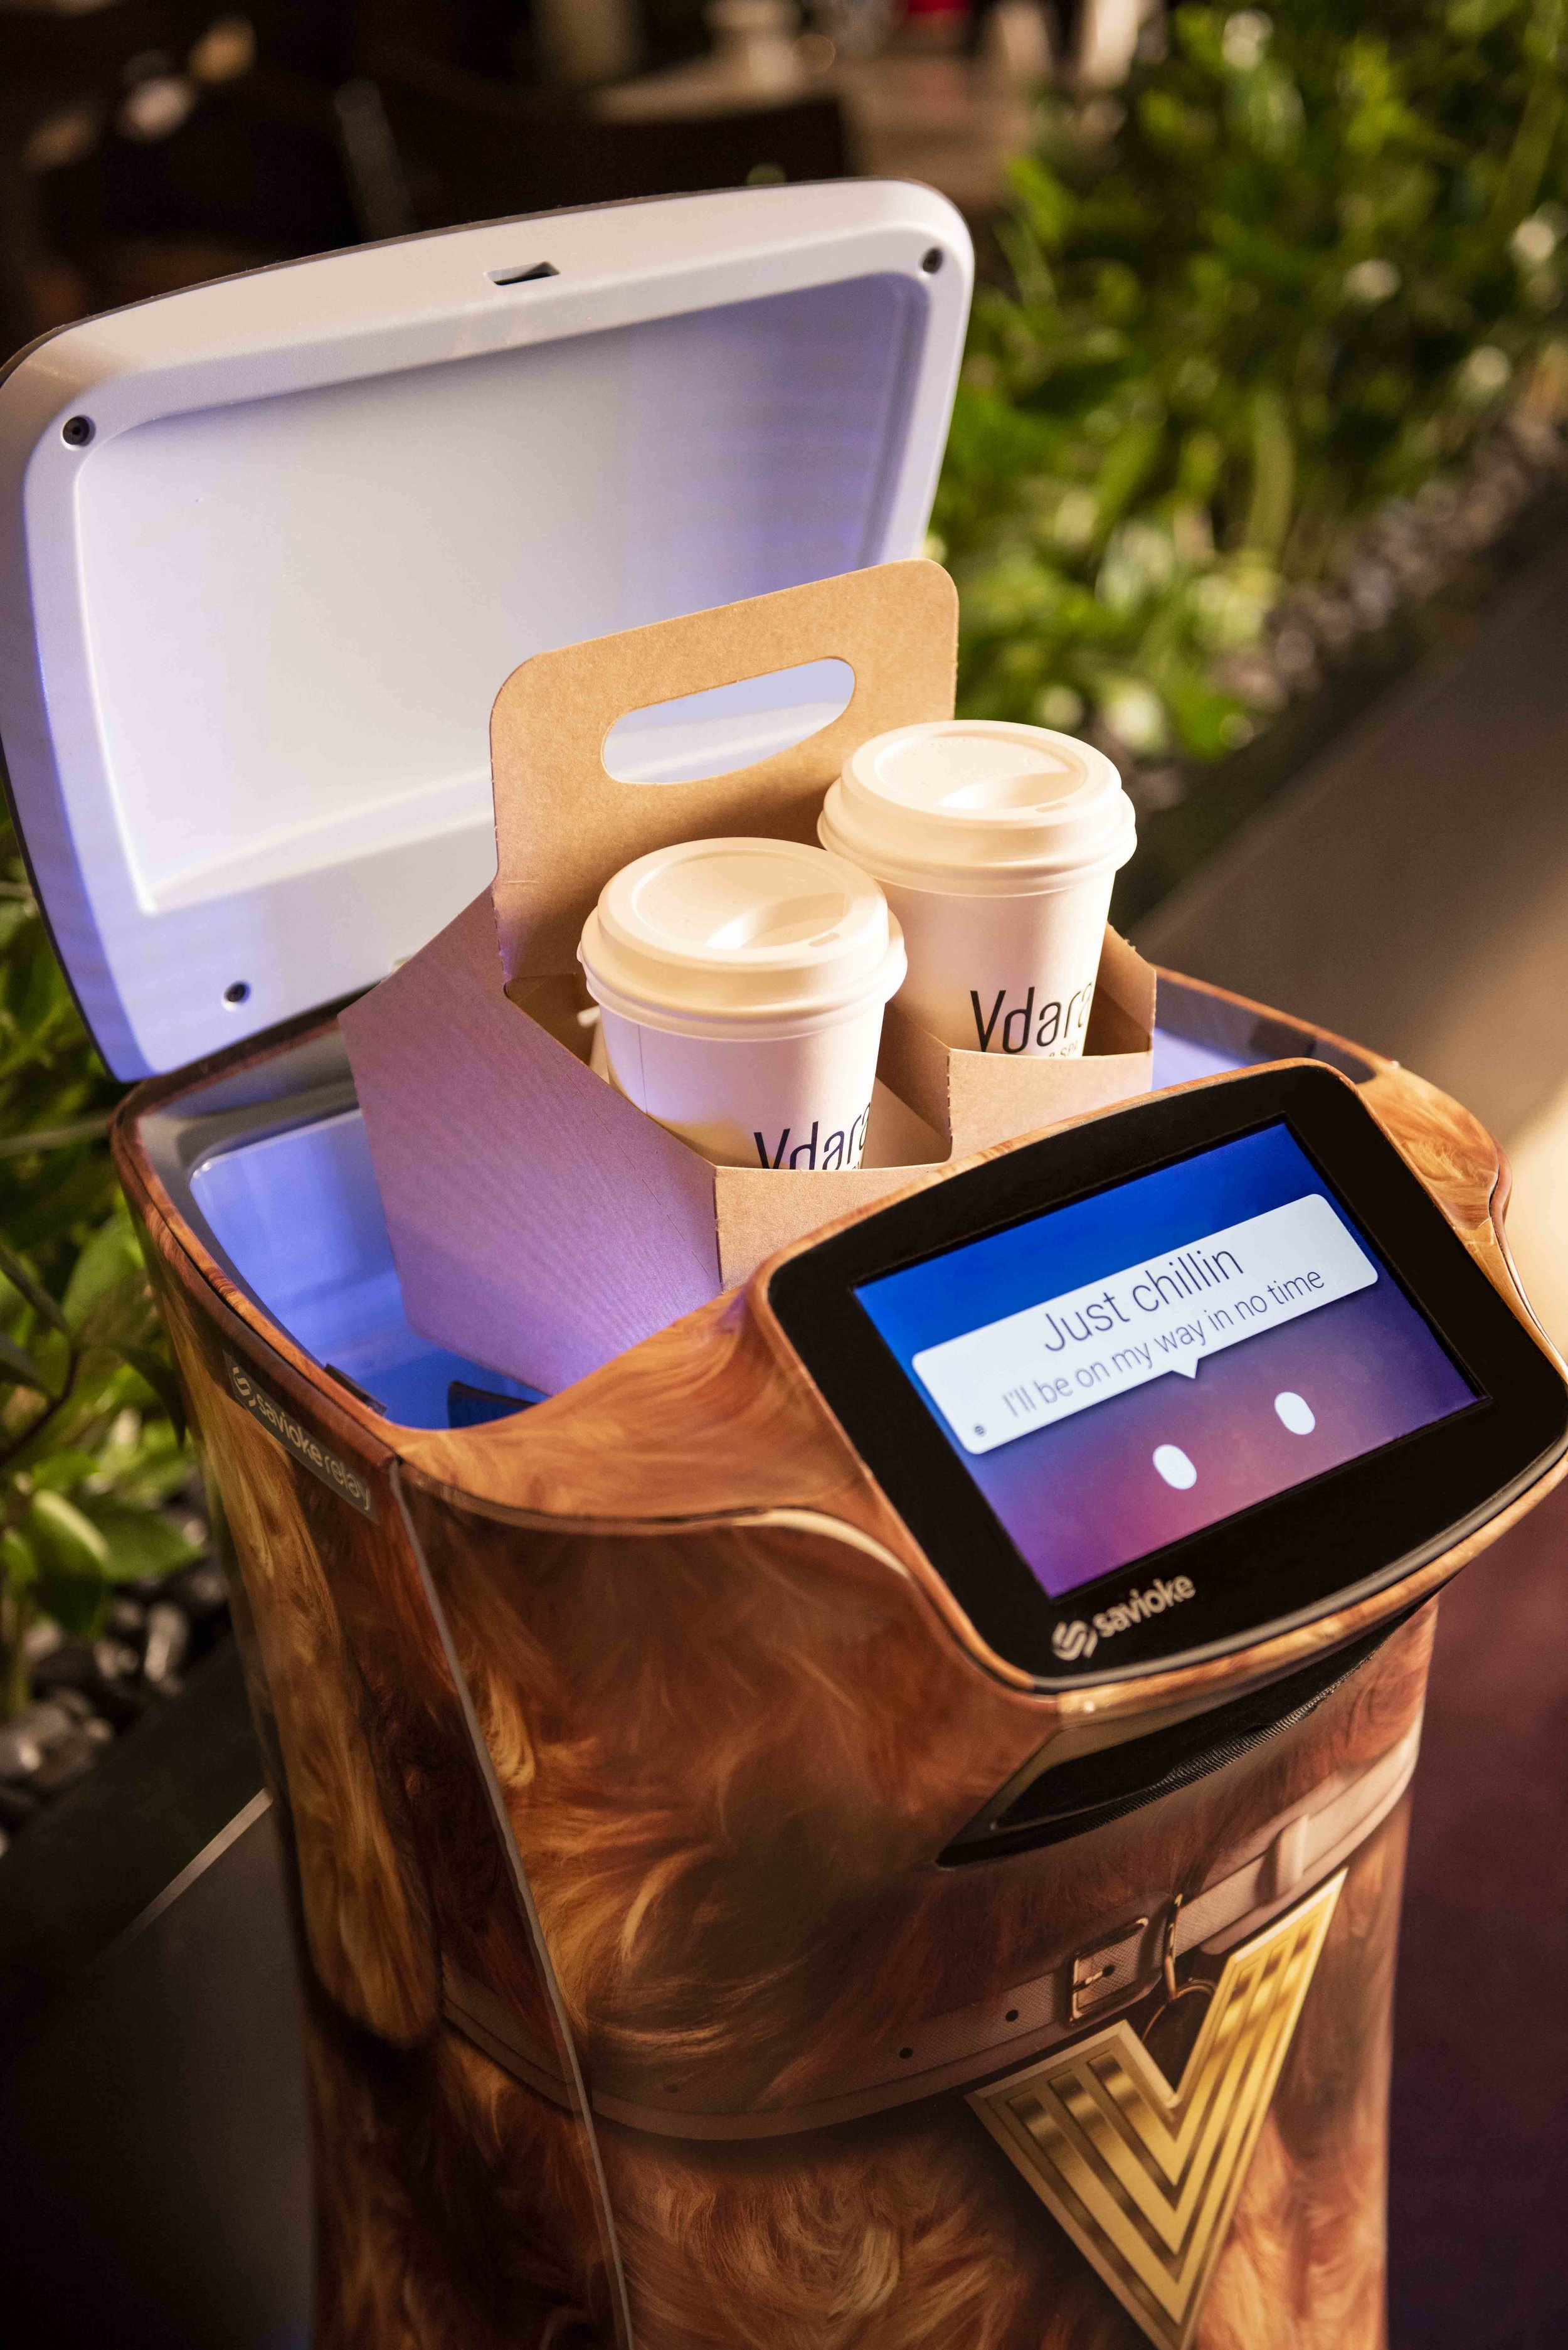 The new robots make it possible for Vdara staff to provide an even higher level of service.